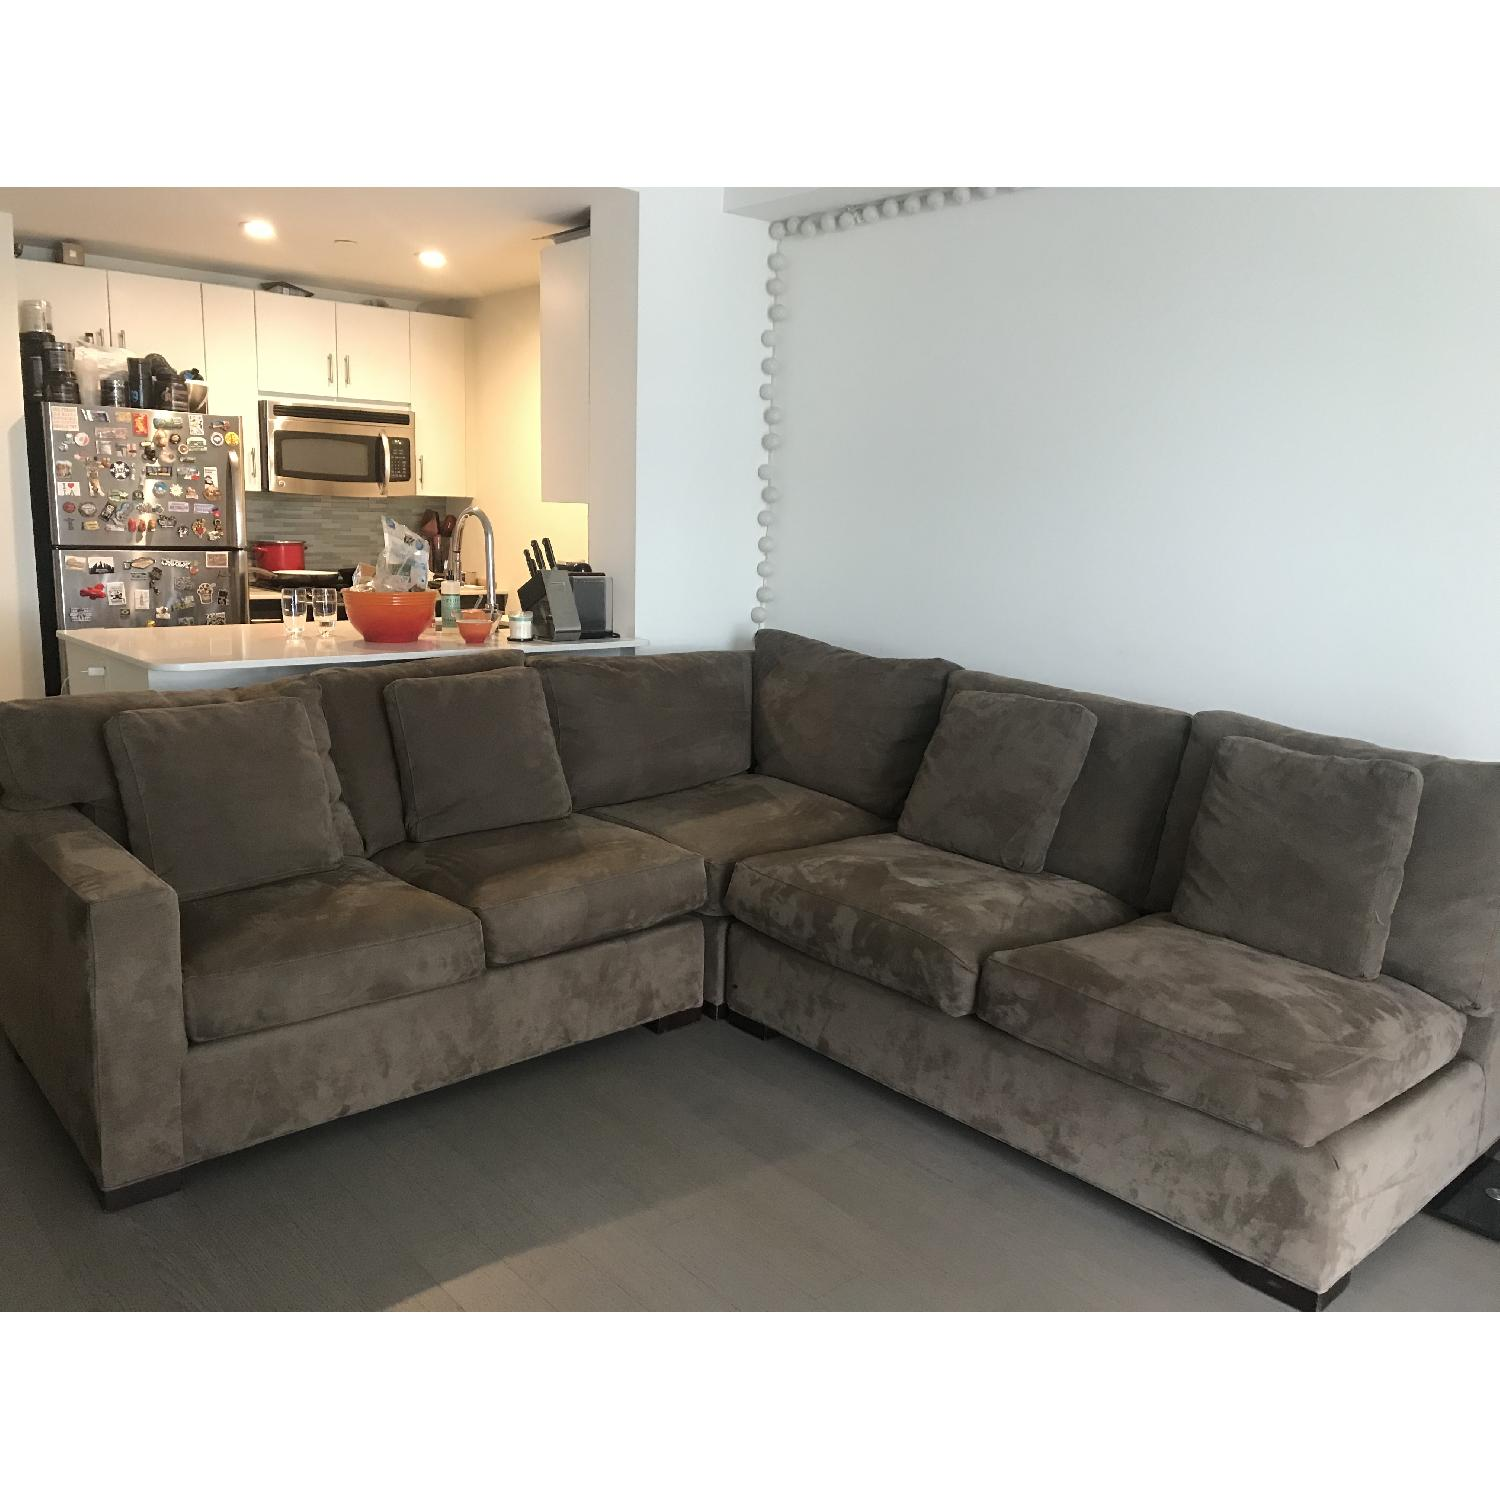 Crate & Barrel Axis 3-Piece Sectional Sofa - image-7